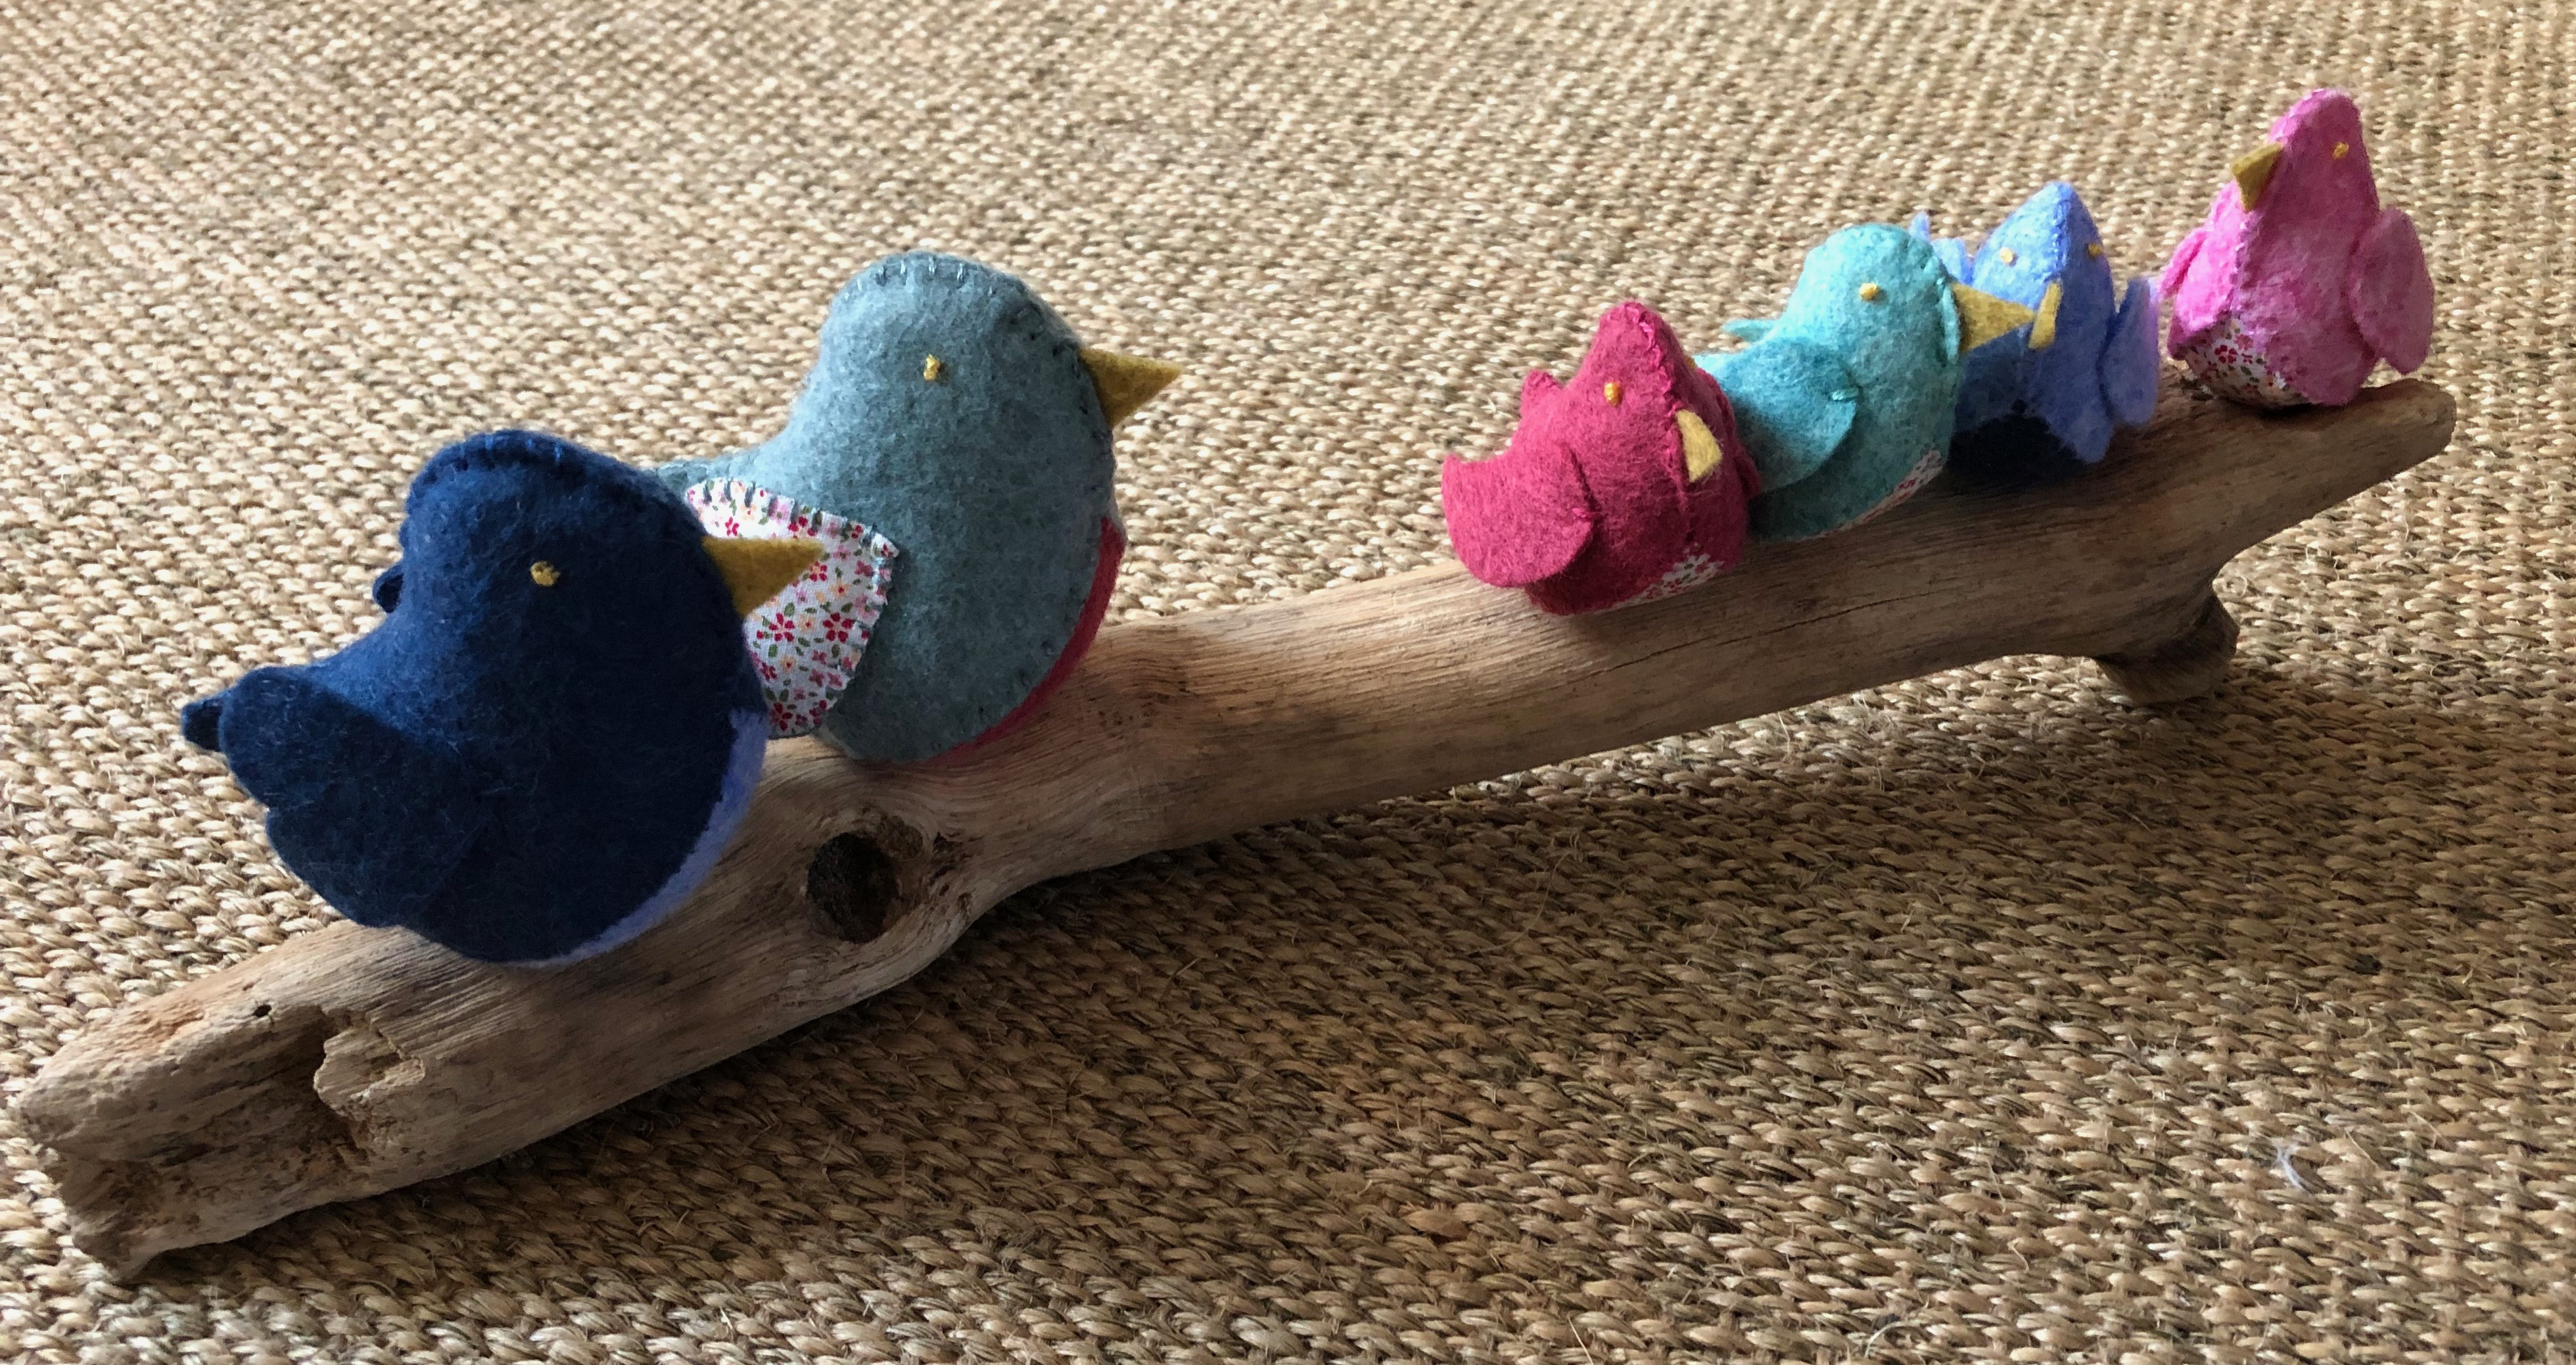 A family of 6 handmade and hand stitched felt and fabric birds sat on a drift wood log. Birds are made in a range of complimentary pastel shades of blue green and pink with tiny flower fabric chests or wings.